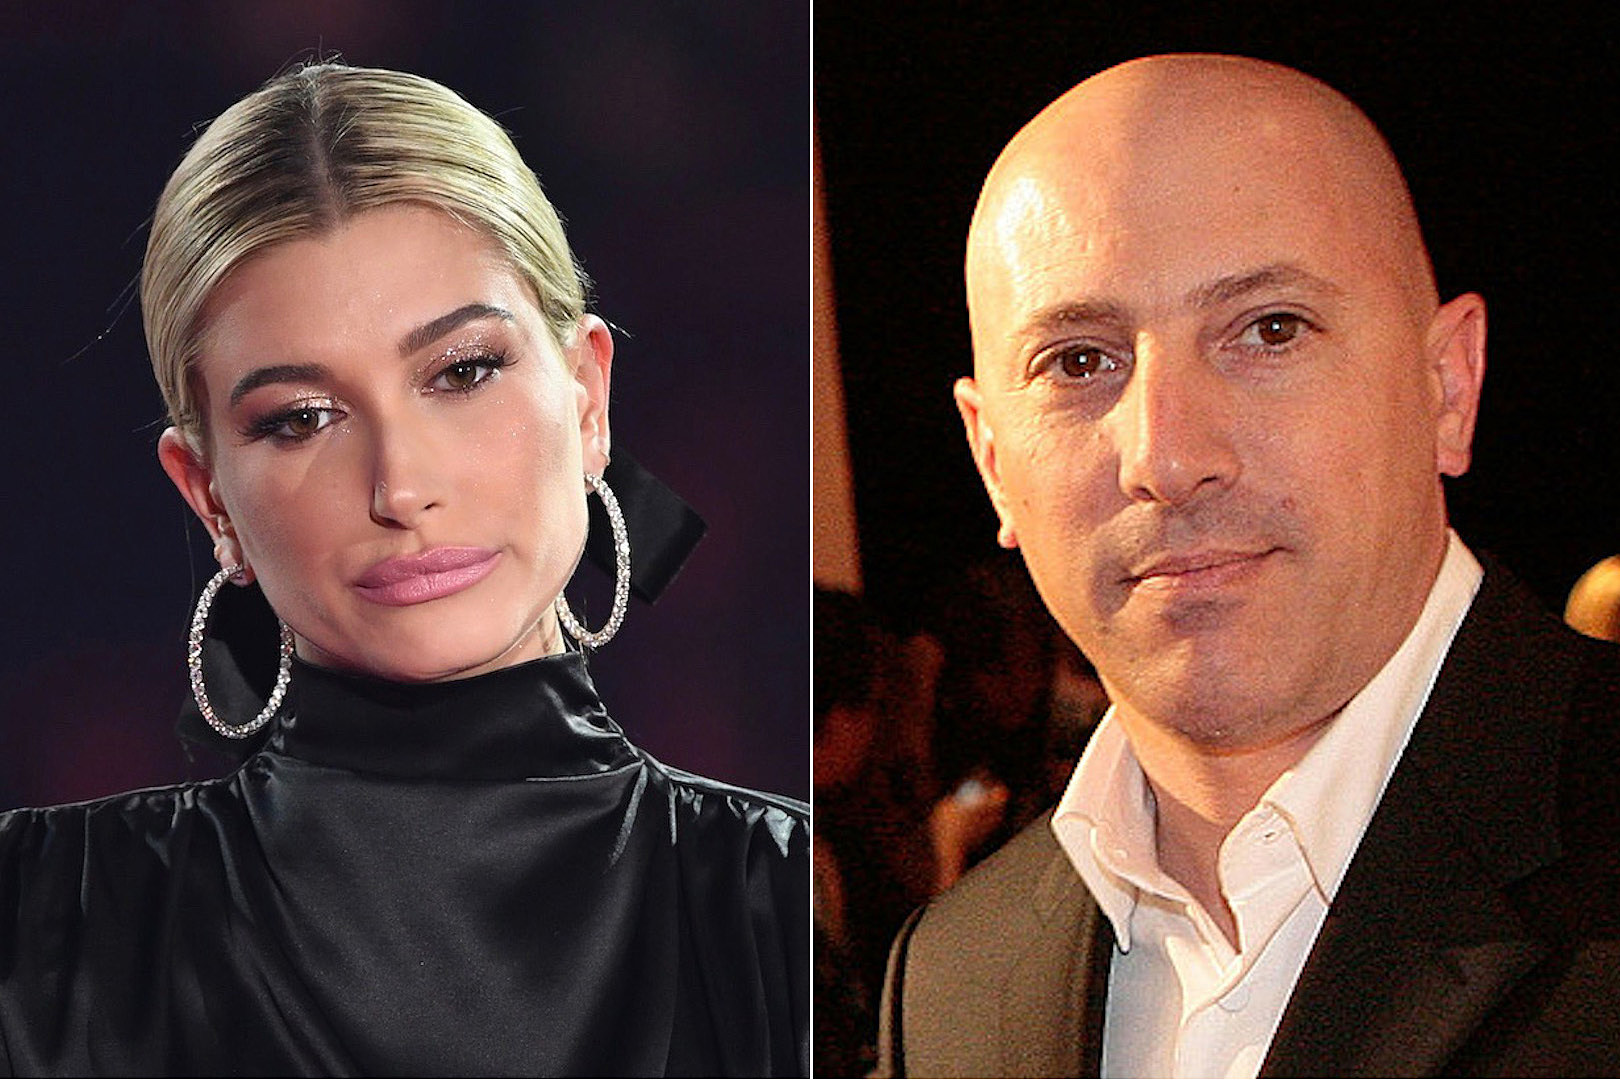 Hailey Bieber Slams Maynard James Keenan for 'Bummer' Comment: 'Very Childish'